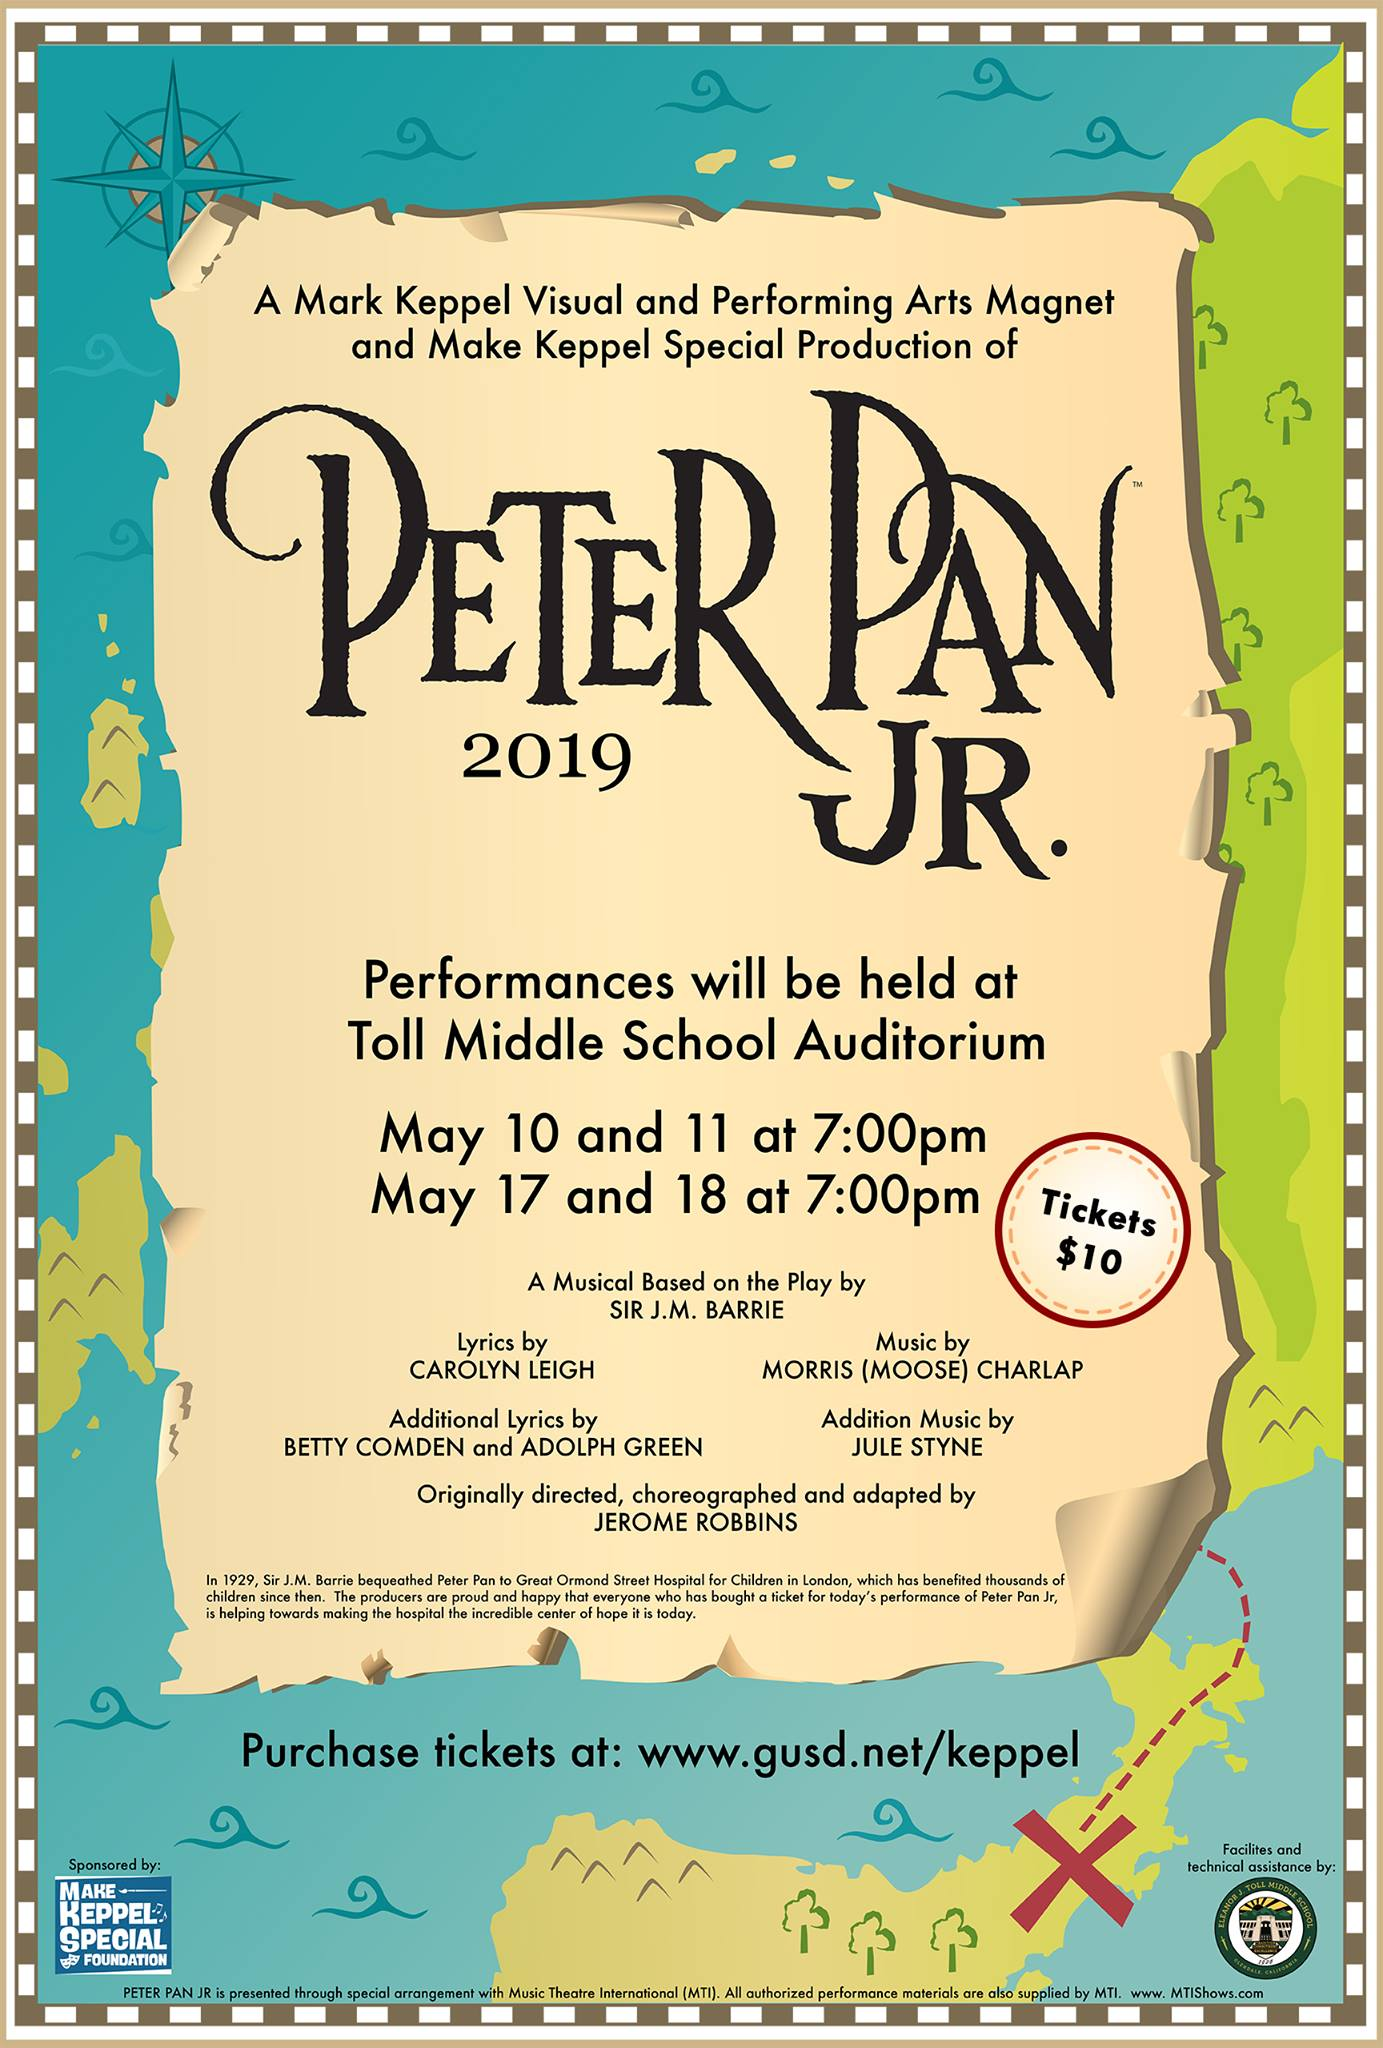 TICKETS TO PETER PAN JR  NOW ON SALE — make keppel special foundation